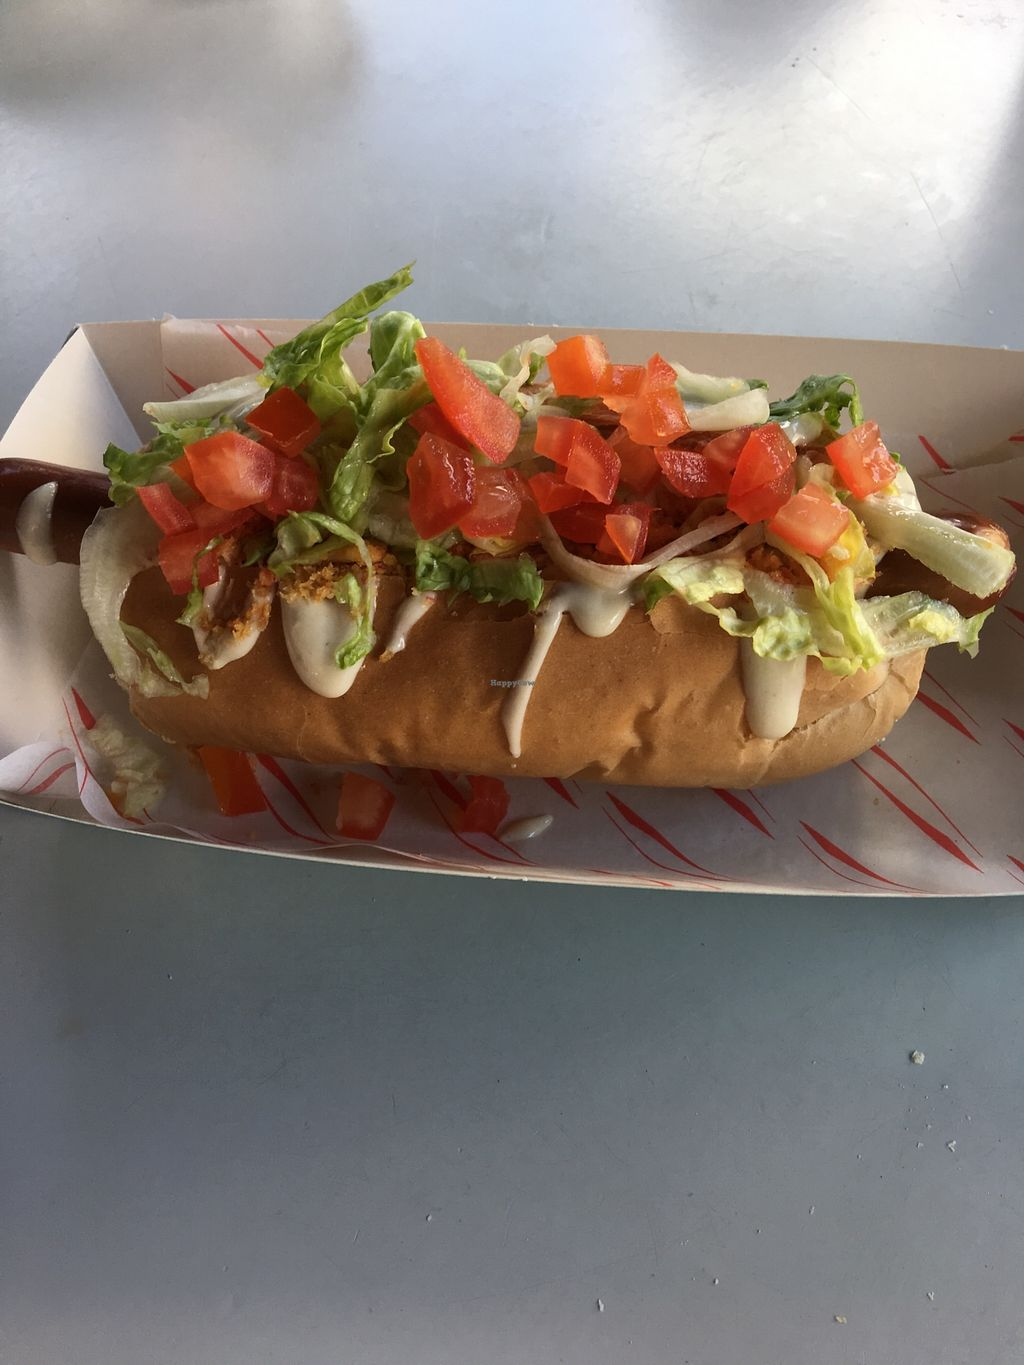 "Photo of Good Dog Vegan Hot Dogs  by <a href=""/members/profile/Lilcrazydee1129"">Lilcrazydee1129</a> <br/>My BLT dog  <br/> March 19, 2018  - <a href='/contact/abuse/image/109489/372974'>Report</a>"